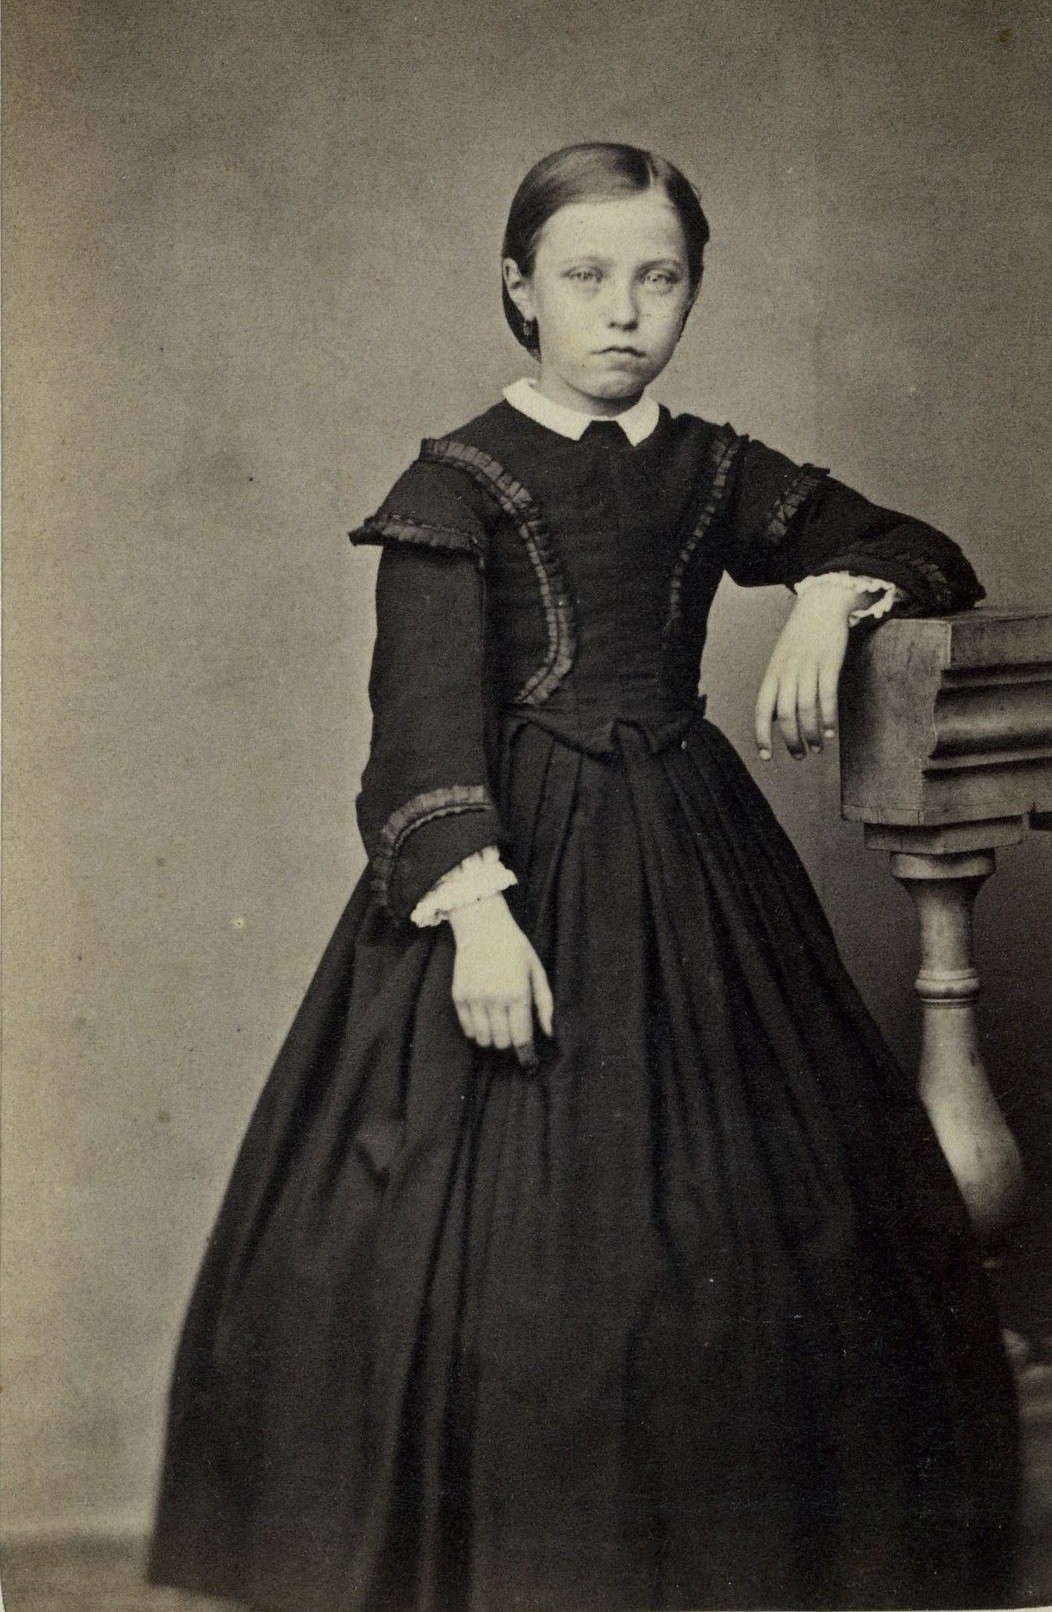 Undated photograph of a young British girl